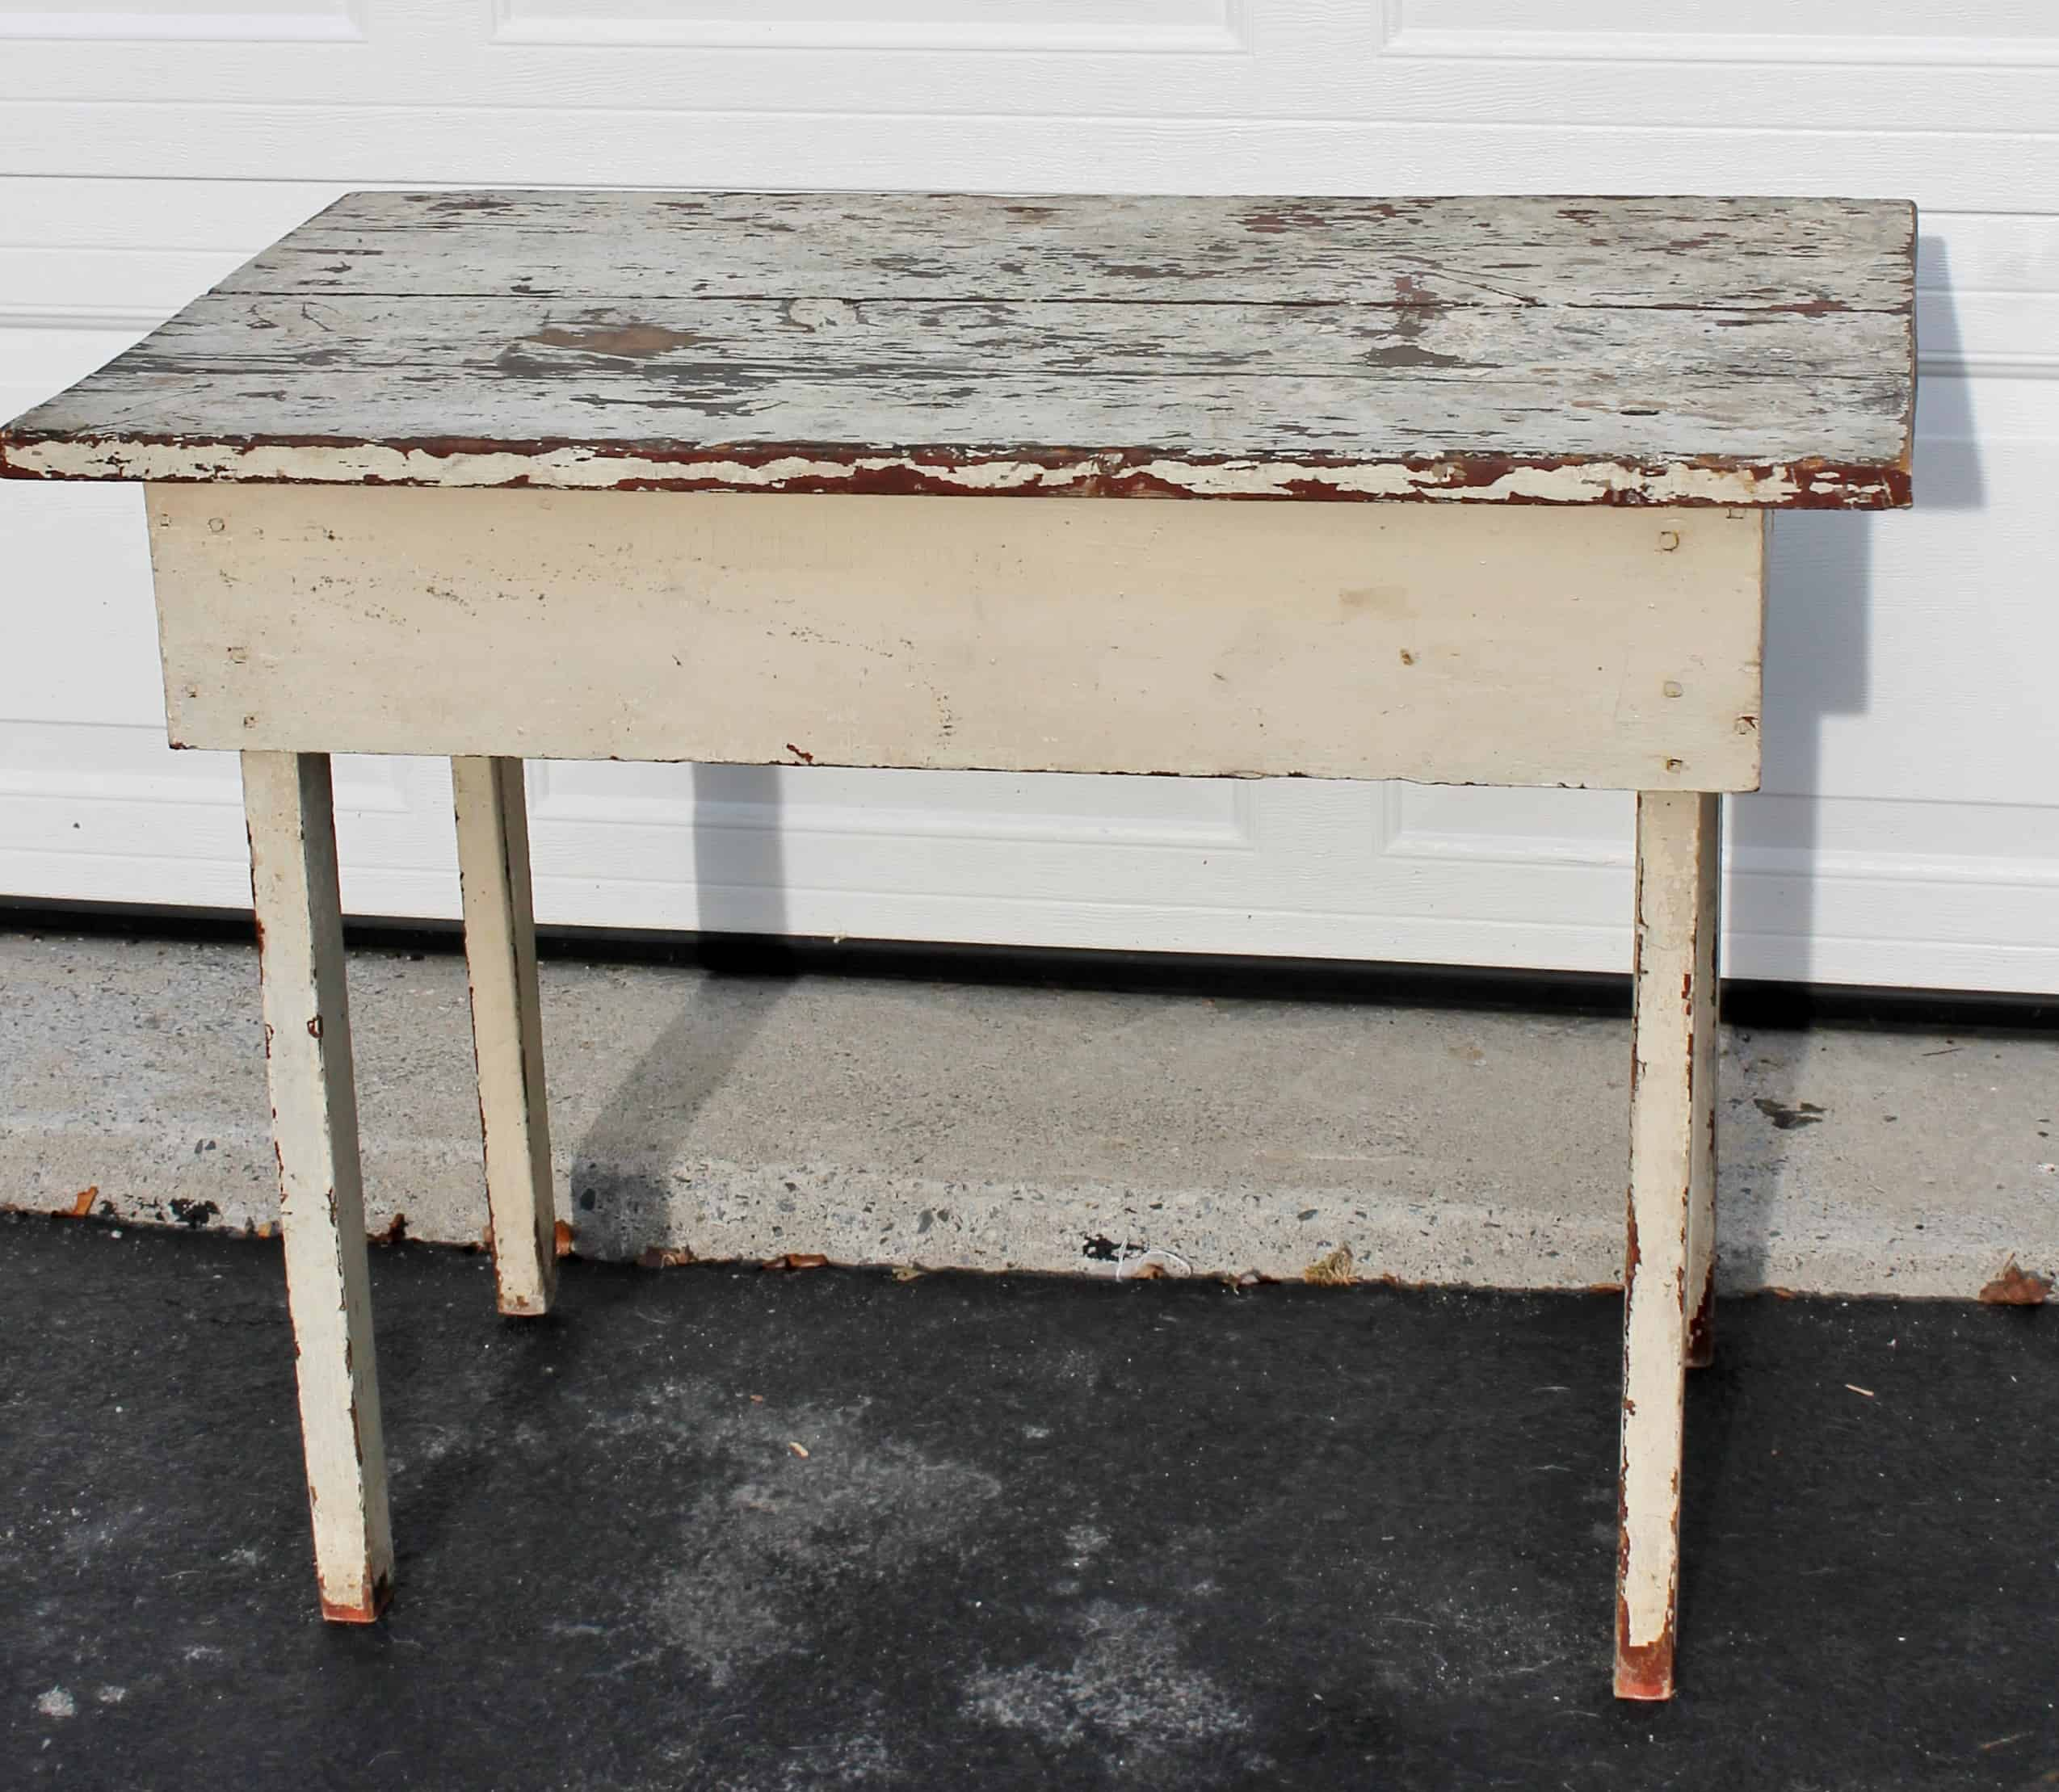 grungy-table-after-cleaning-and-waxing